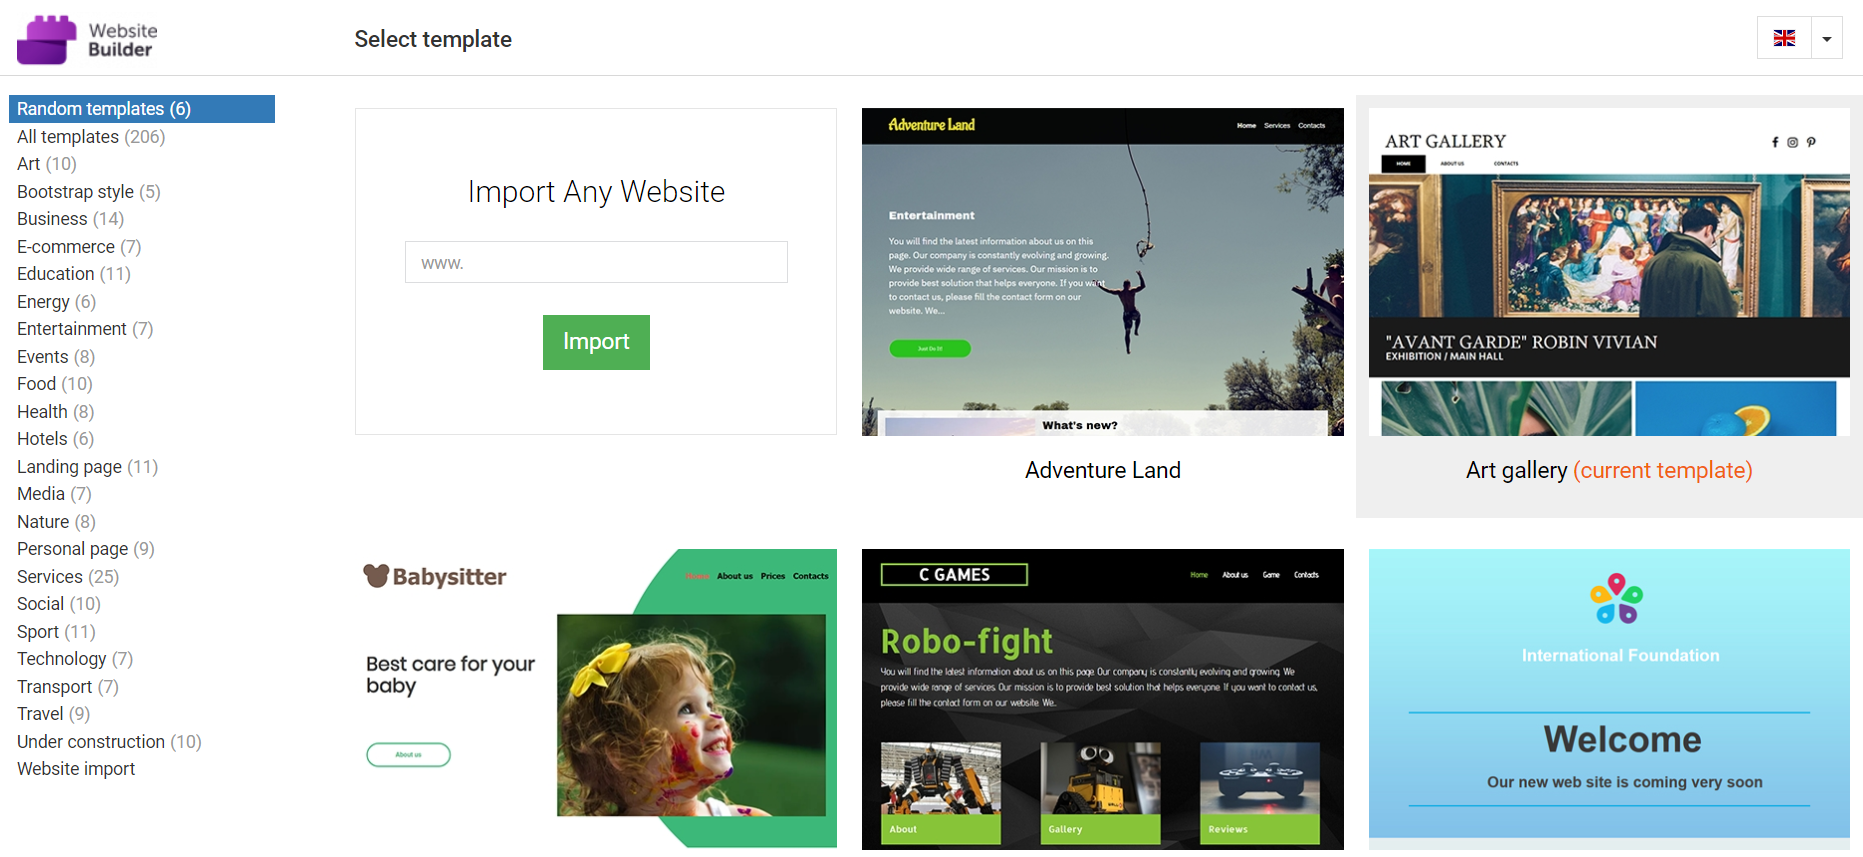 Rows of different template options for Website Builder are shown.